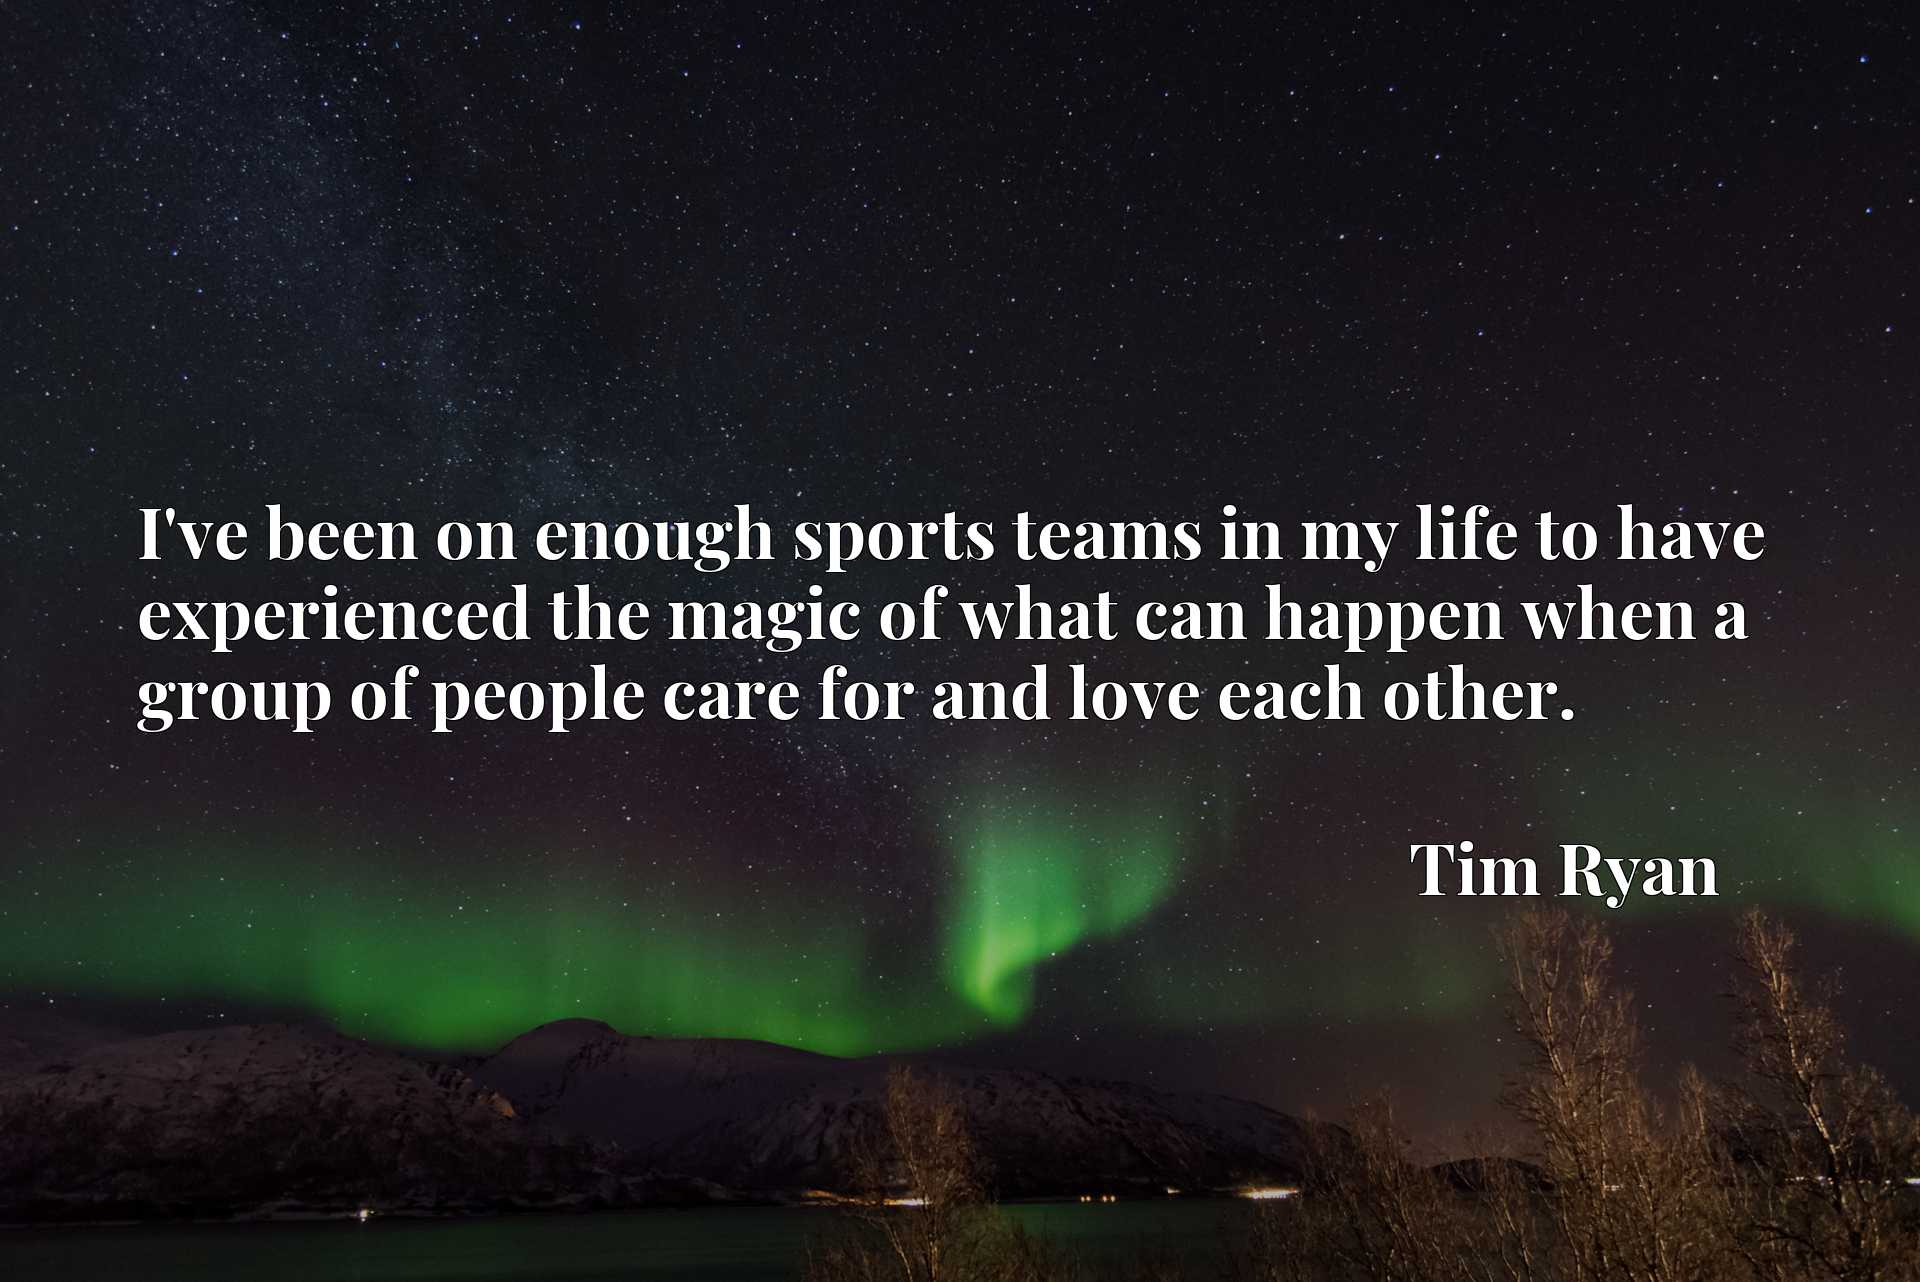 Quote Picture :I've been on enough sports teams in my life to have experienced the magic of what can happen when a group of people care for and love each other.